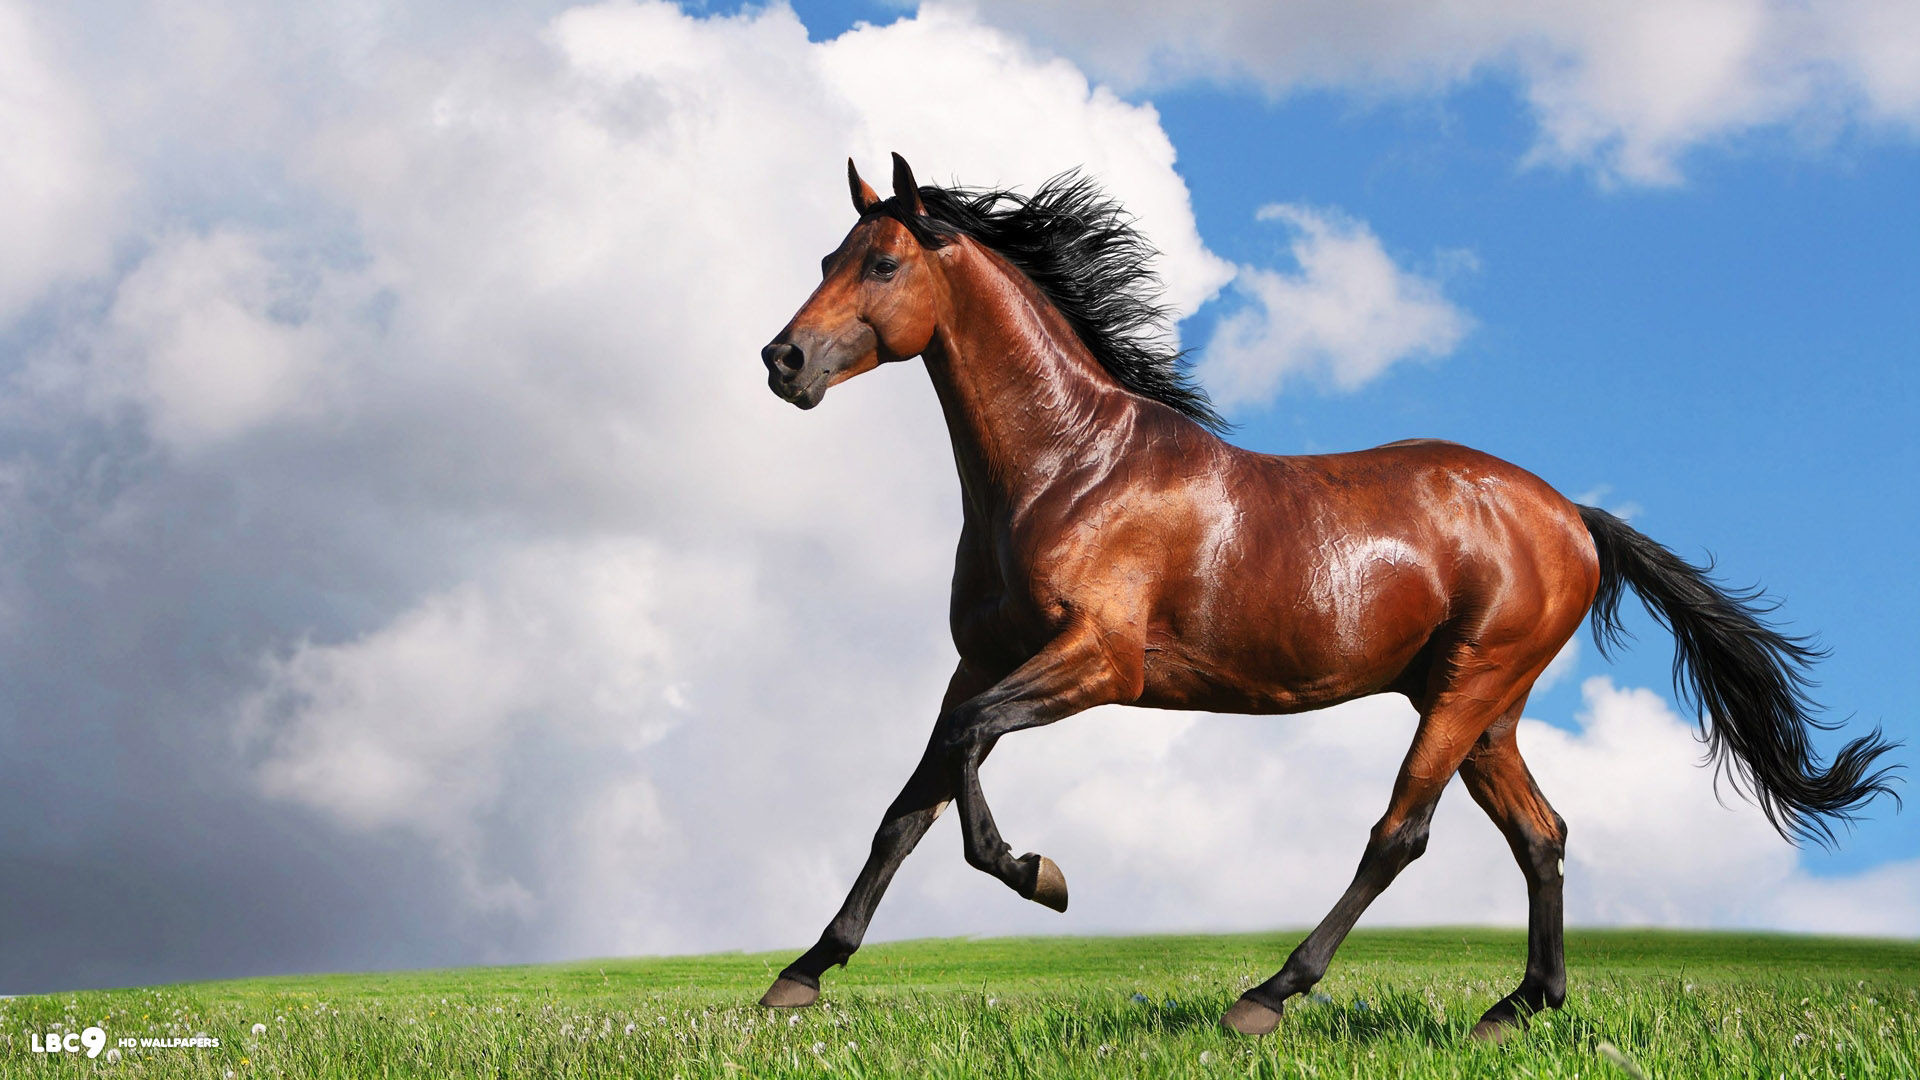 1920x1080 beautiful horse high definition wallpaper free